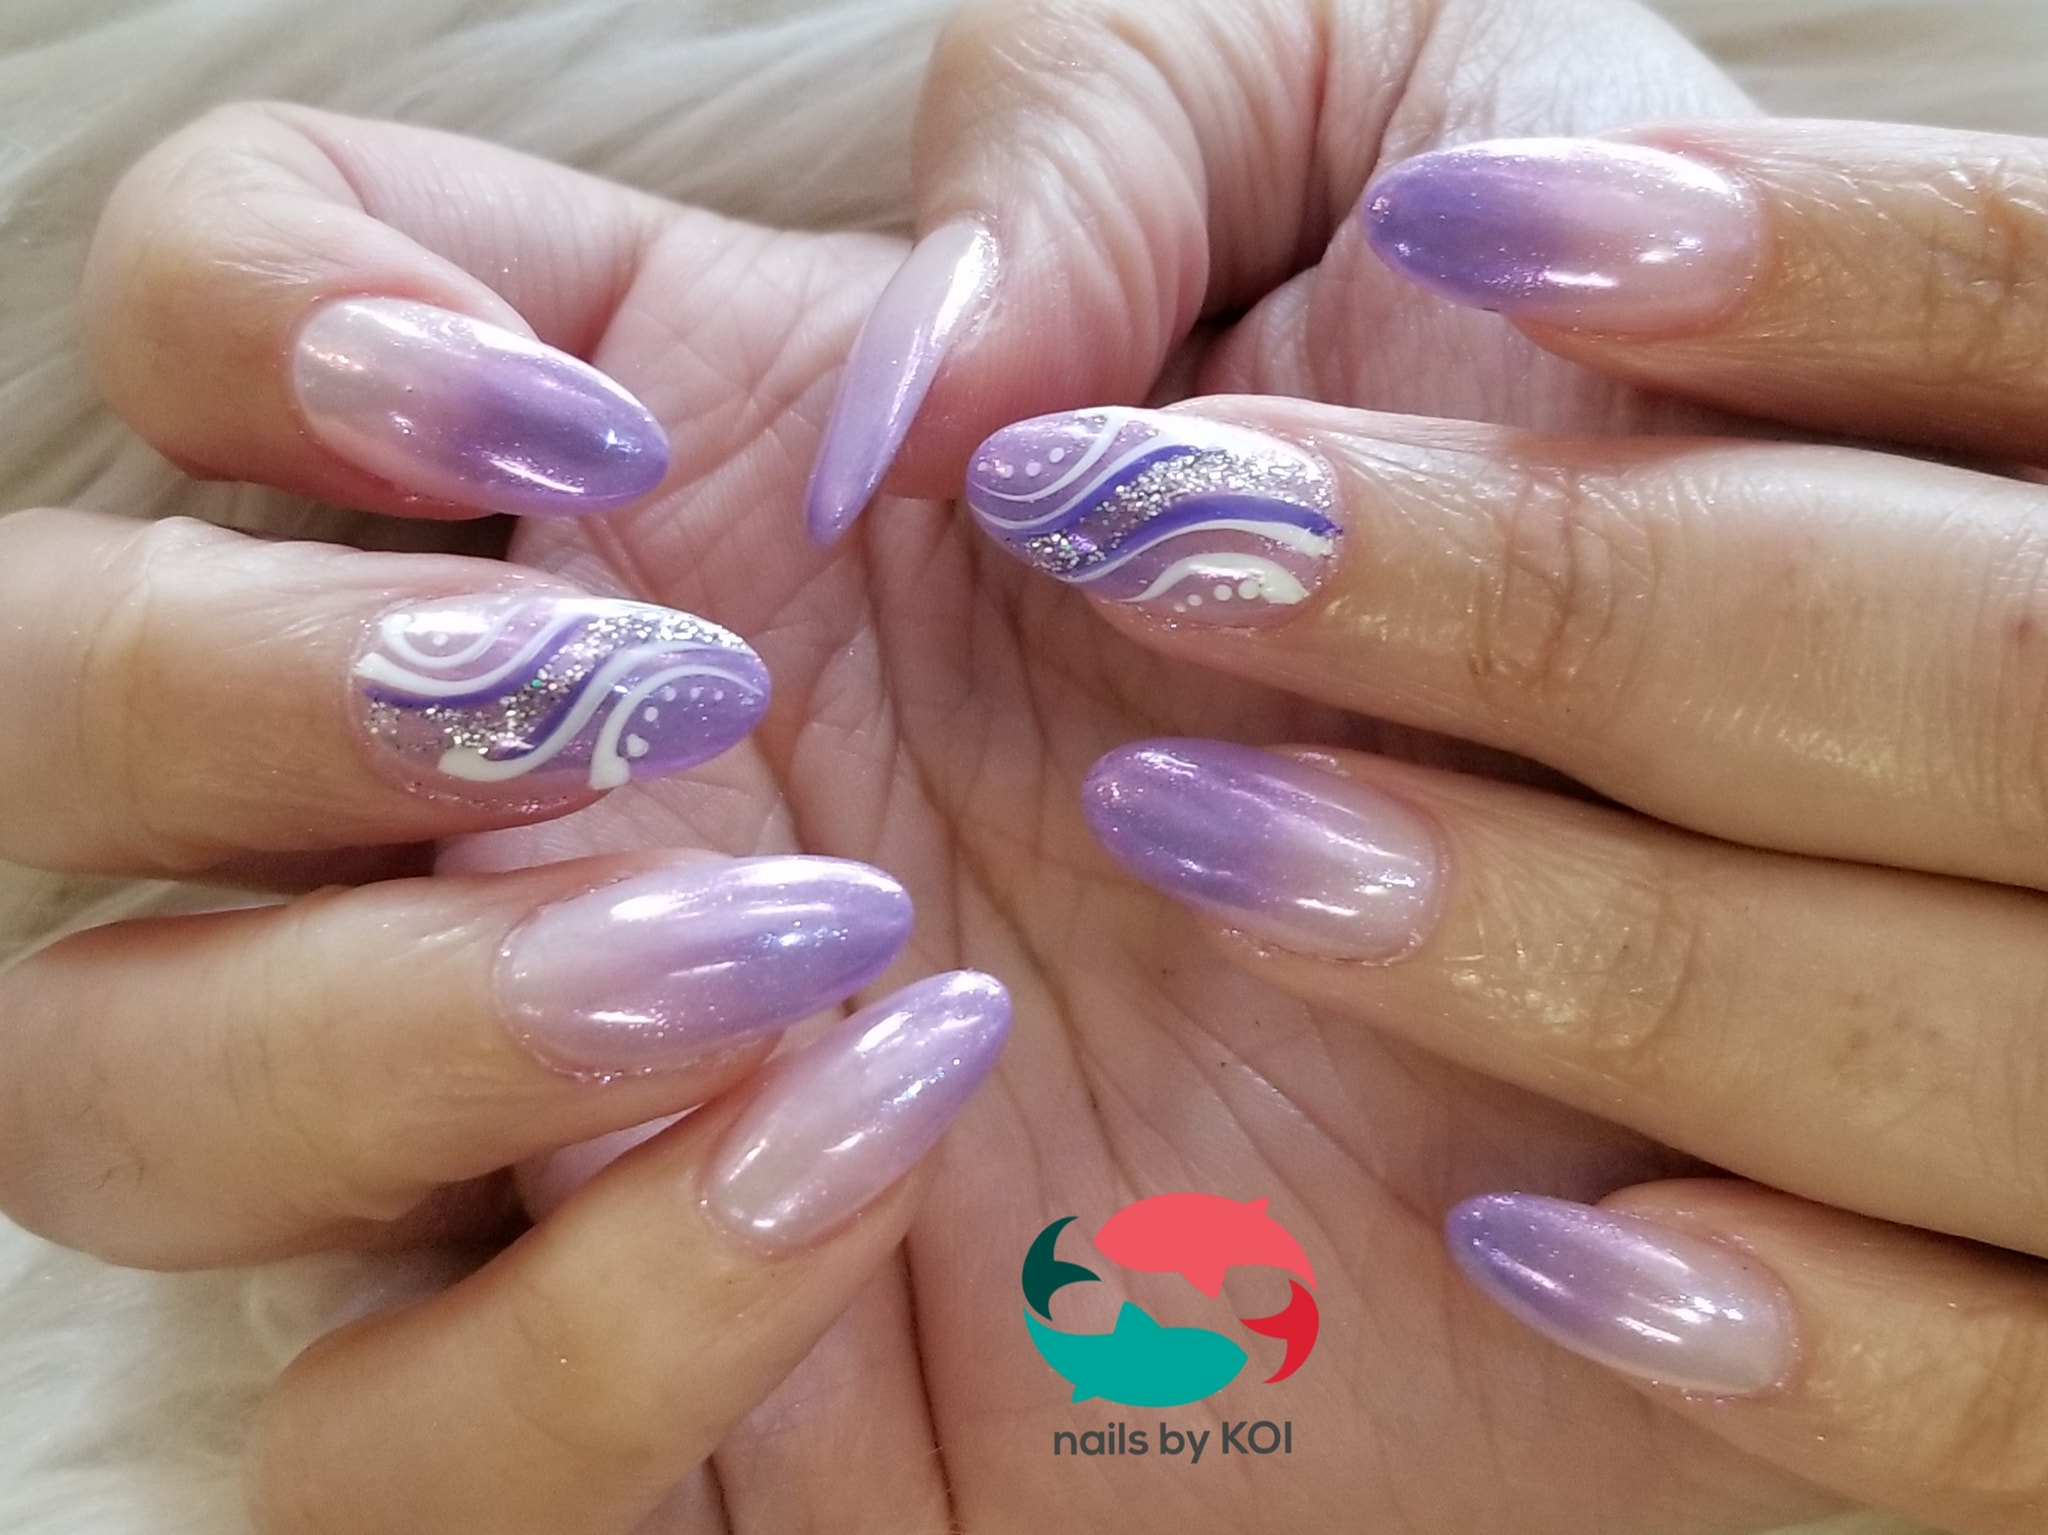 Top Nails   Voted Best Nail Salon In Clarksville TN, 37042